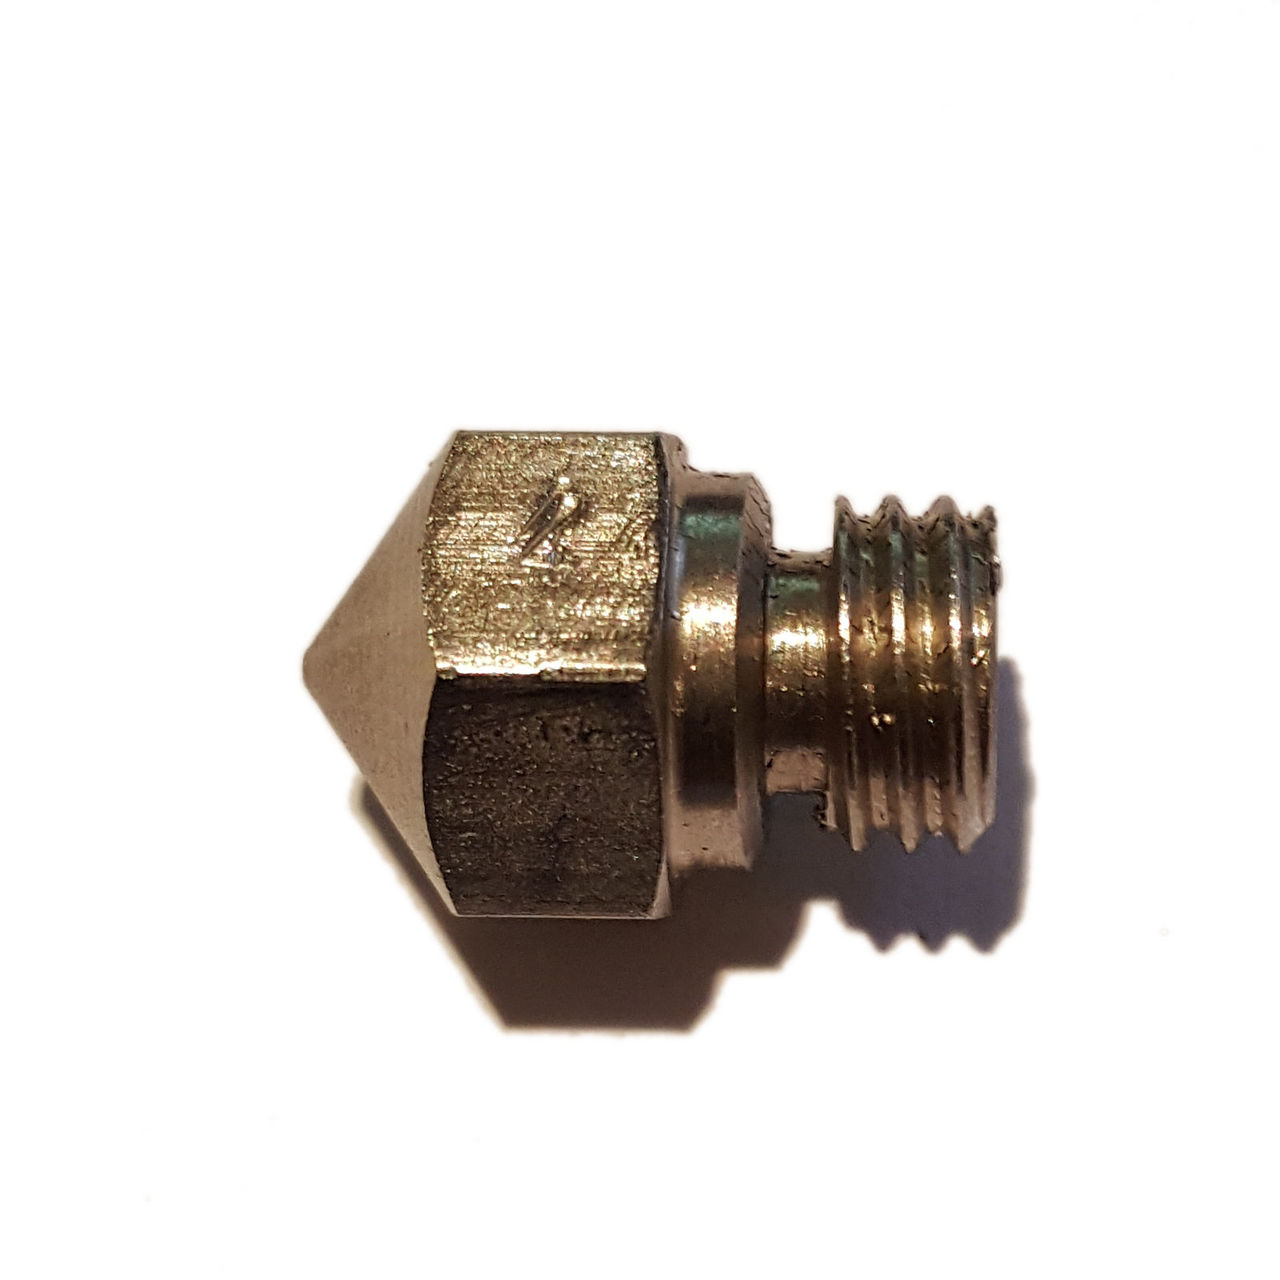 MK10 0.4mm Stainless Steel Nozzle - 3D Printing Canada